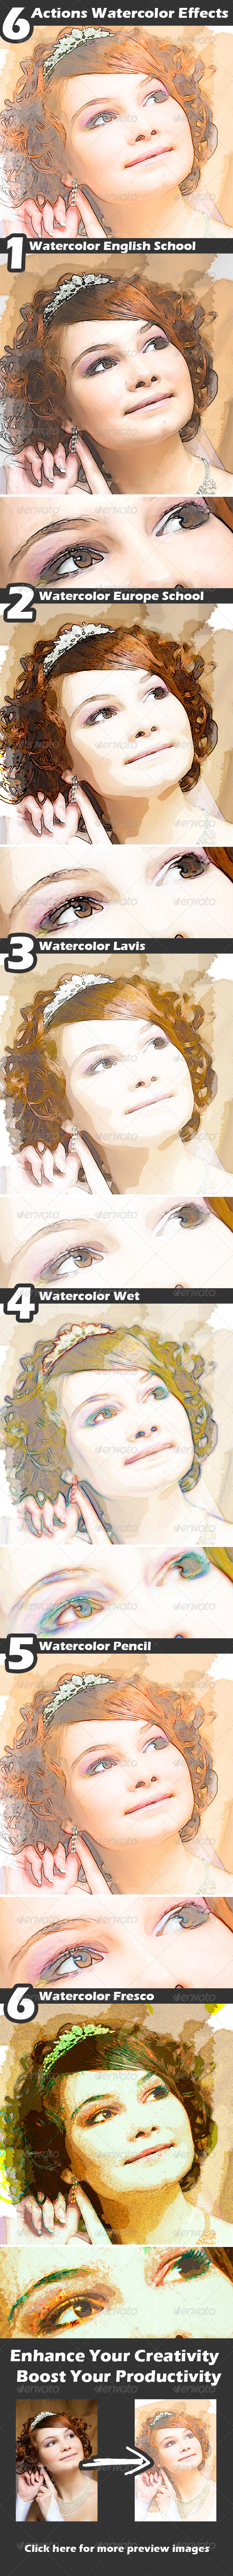 GraphicRiver Actions Watercolor Effects 4482722